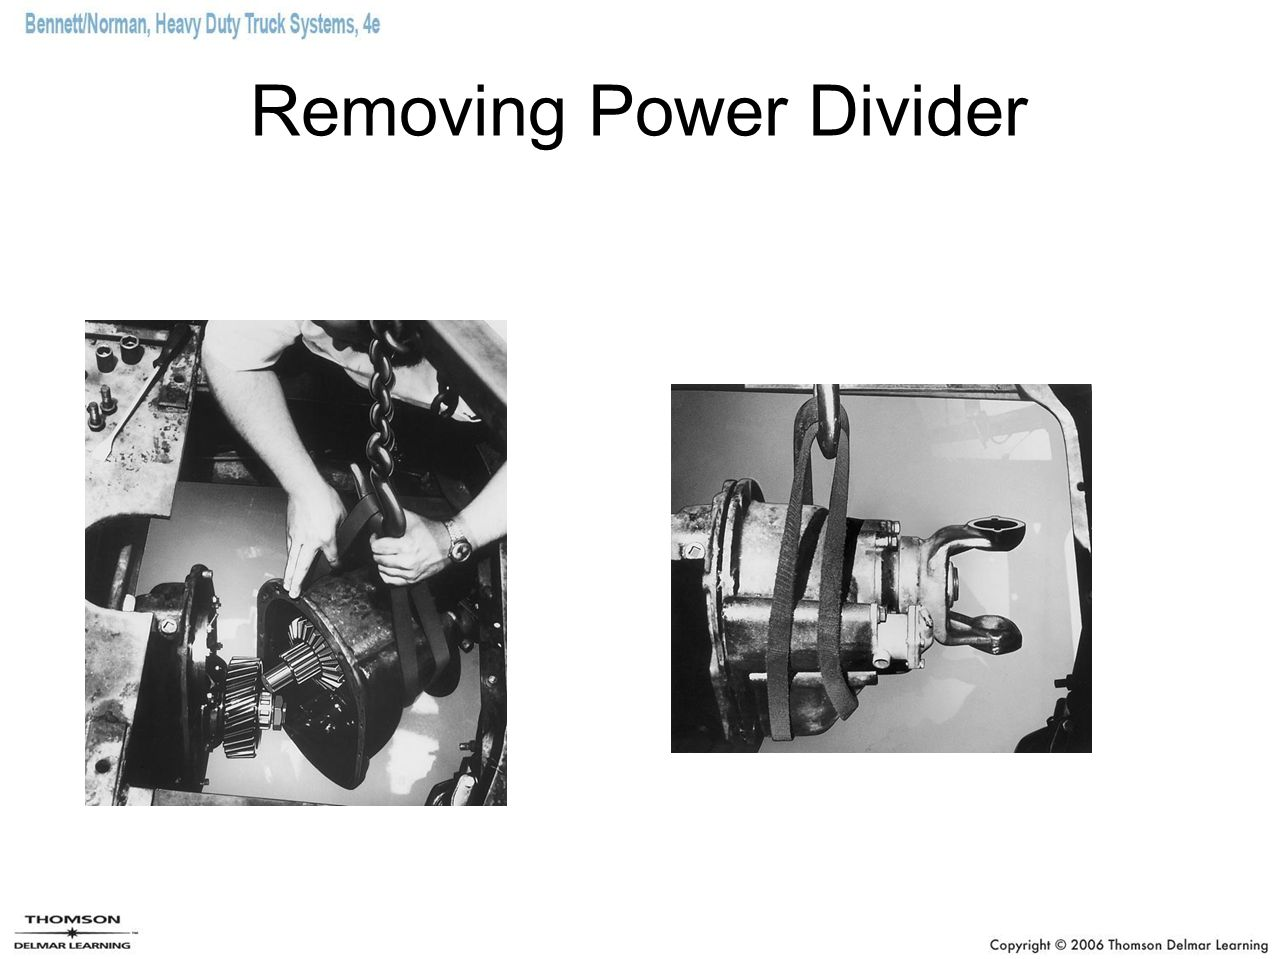 Removing Power Divider